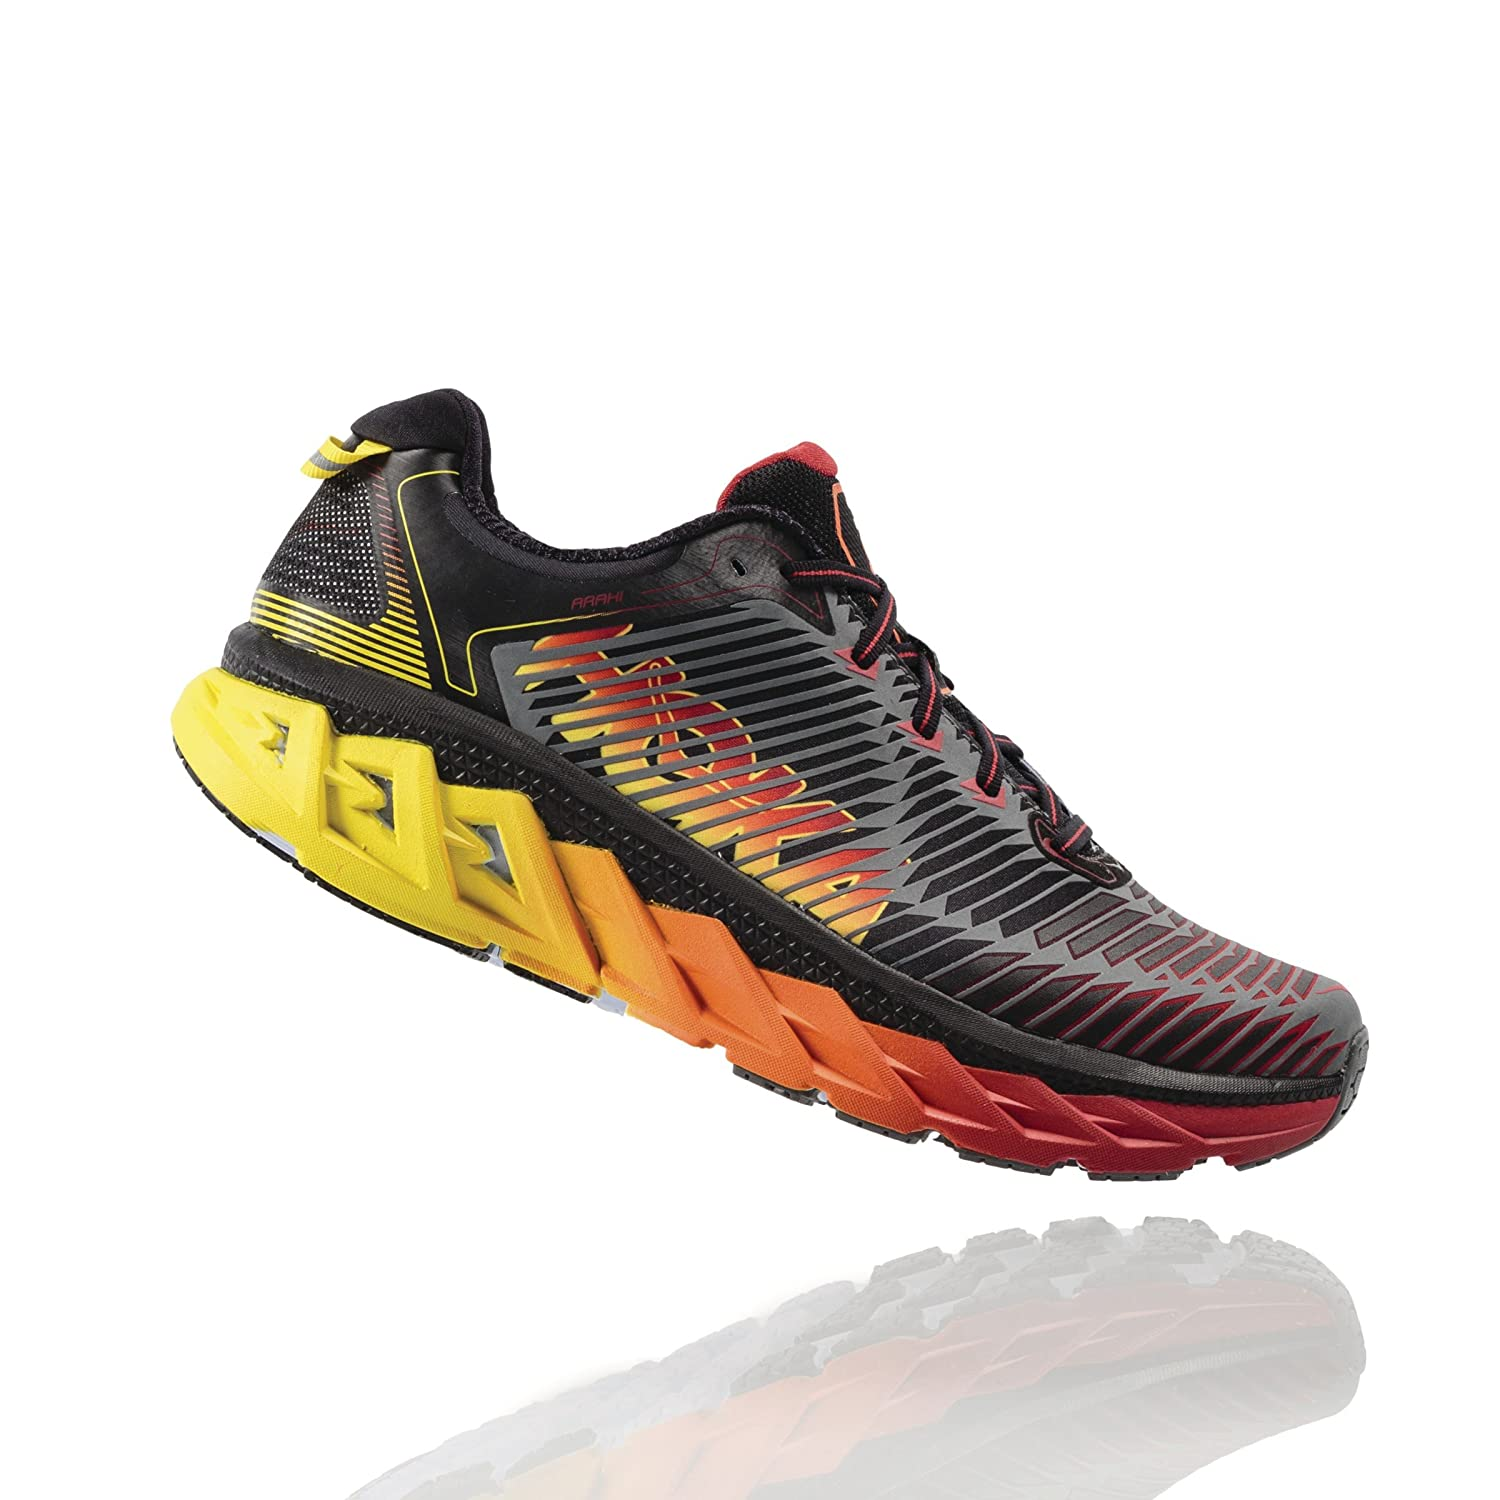 HOKA ONE ONE Mens Arahi Running US|Black/Formula Shoe B01H6AYDU4 12 D(M) US|Black/Formula Running One ddfe8a